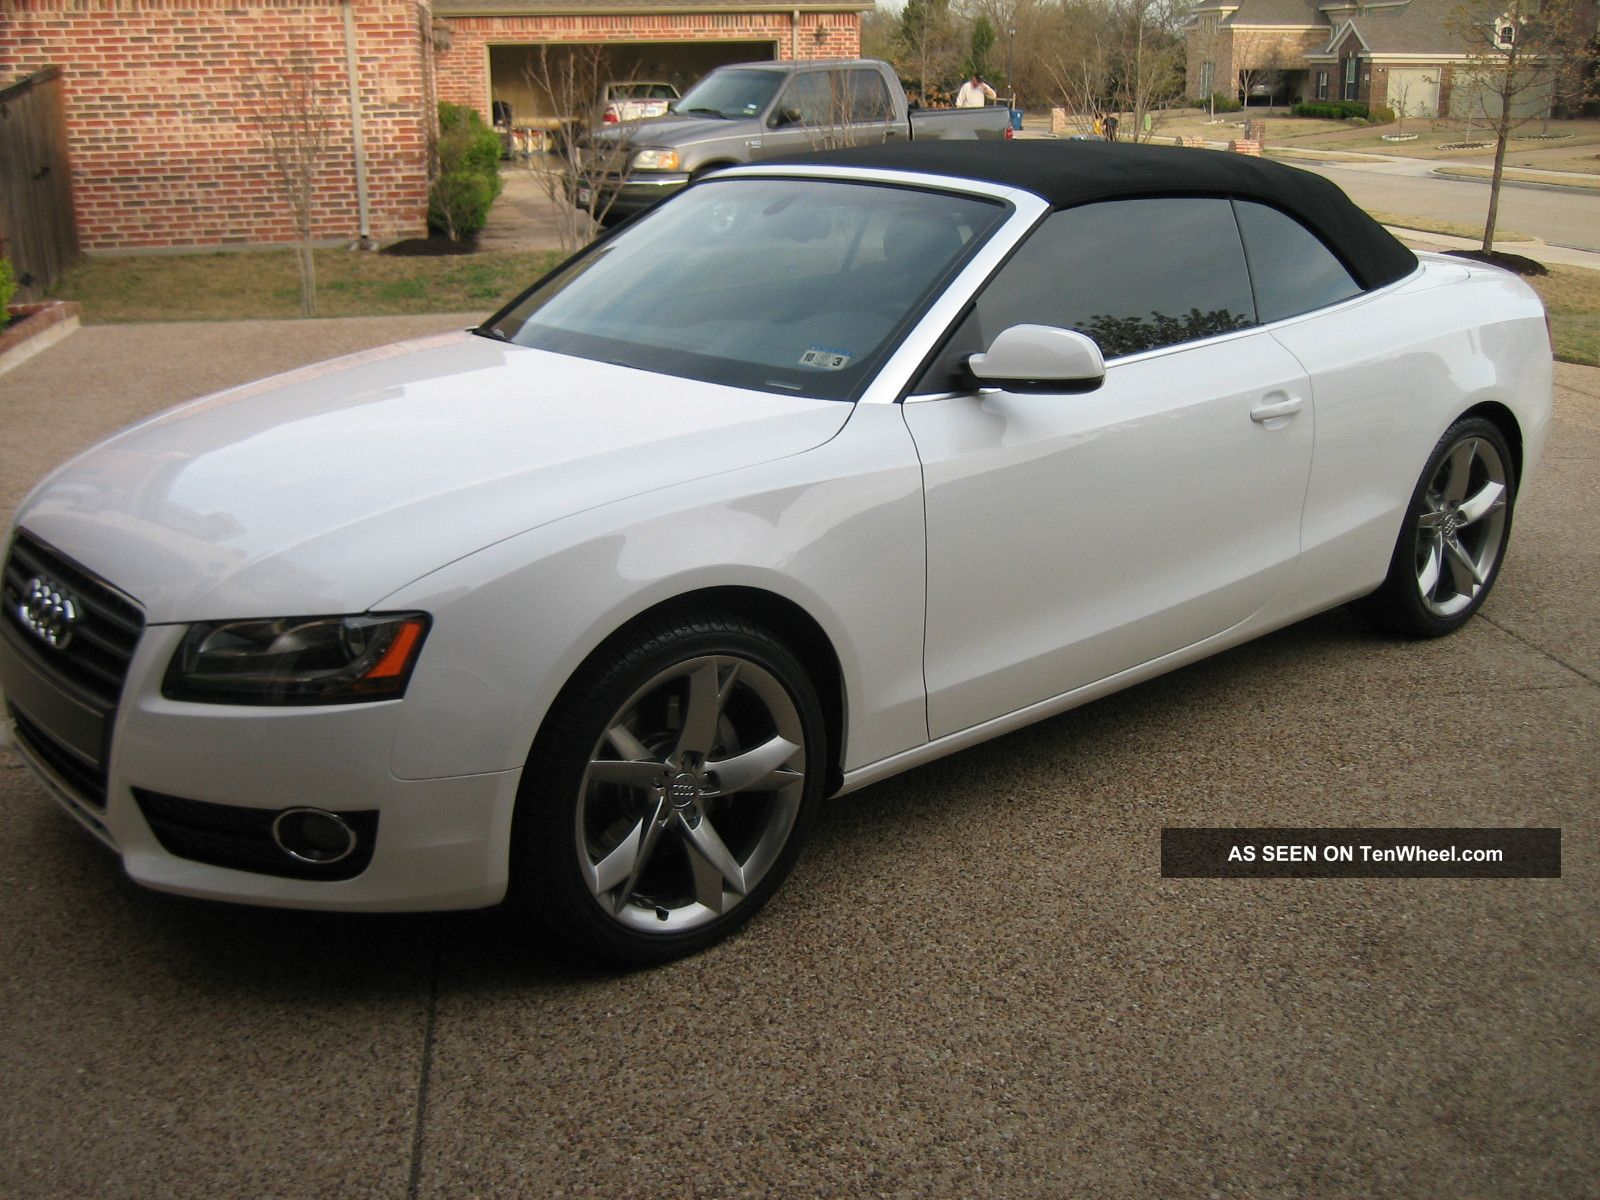 2012 audi a5 quattro cabriolet convertible w premium plus package. Black Bedroom Furniture Sets. Home Design Ideas